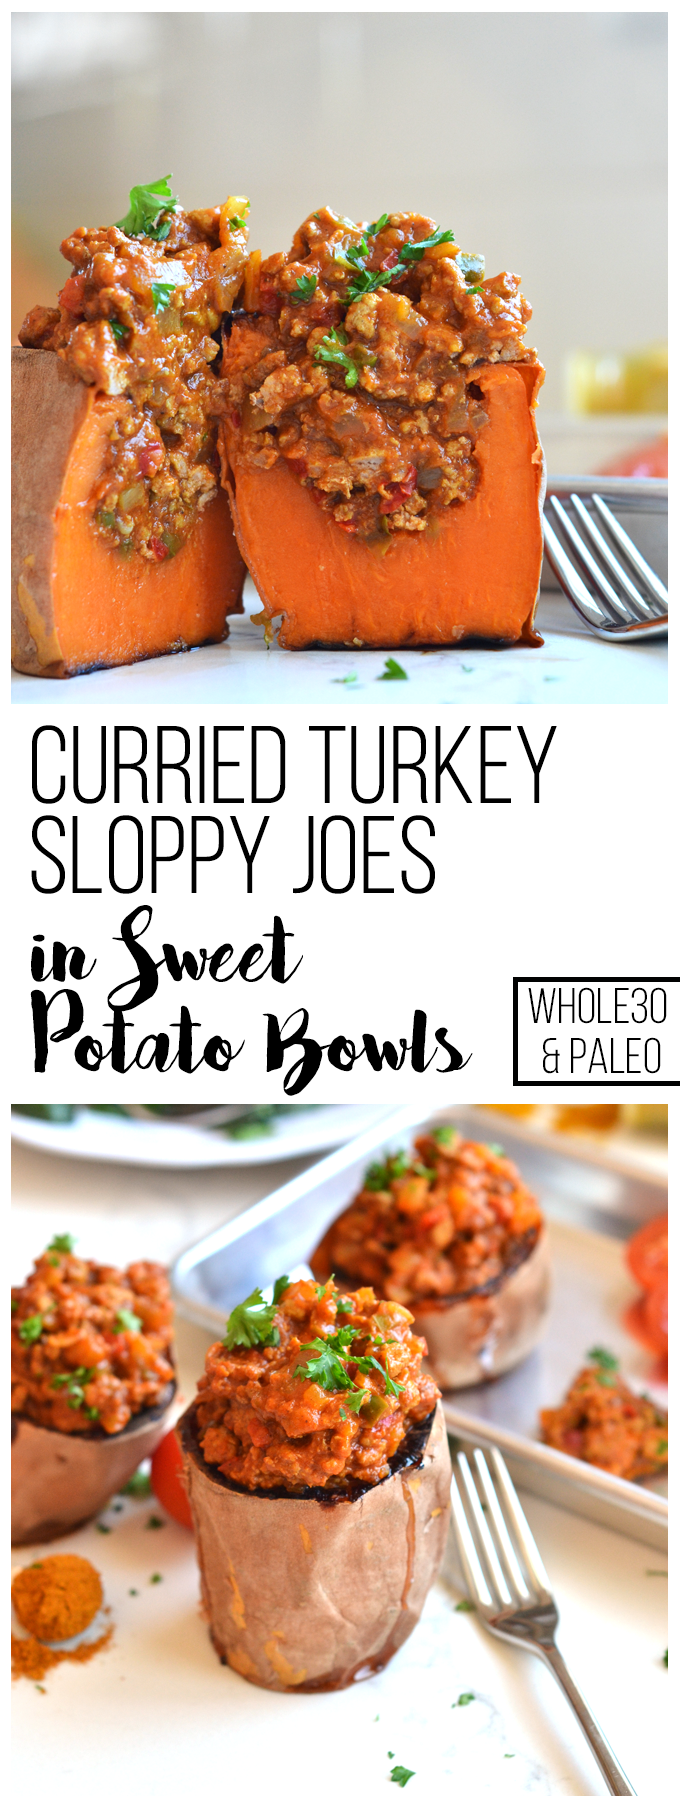 These Curried Turkey Sloppy Joes in Sweet Potato Bowls are the perfect ...